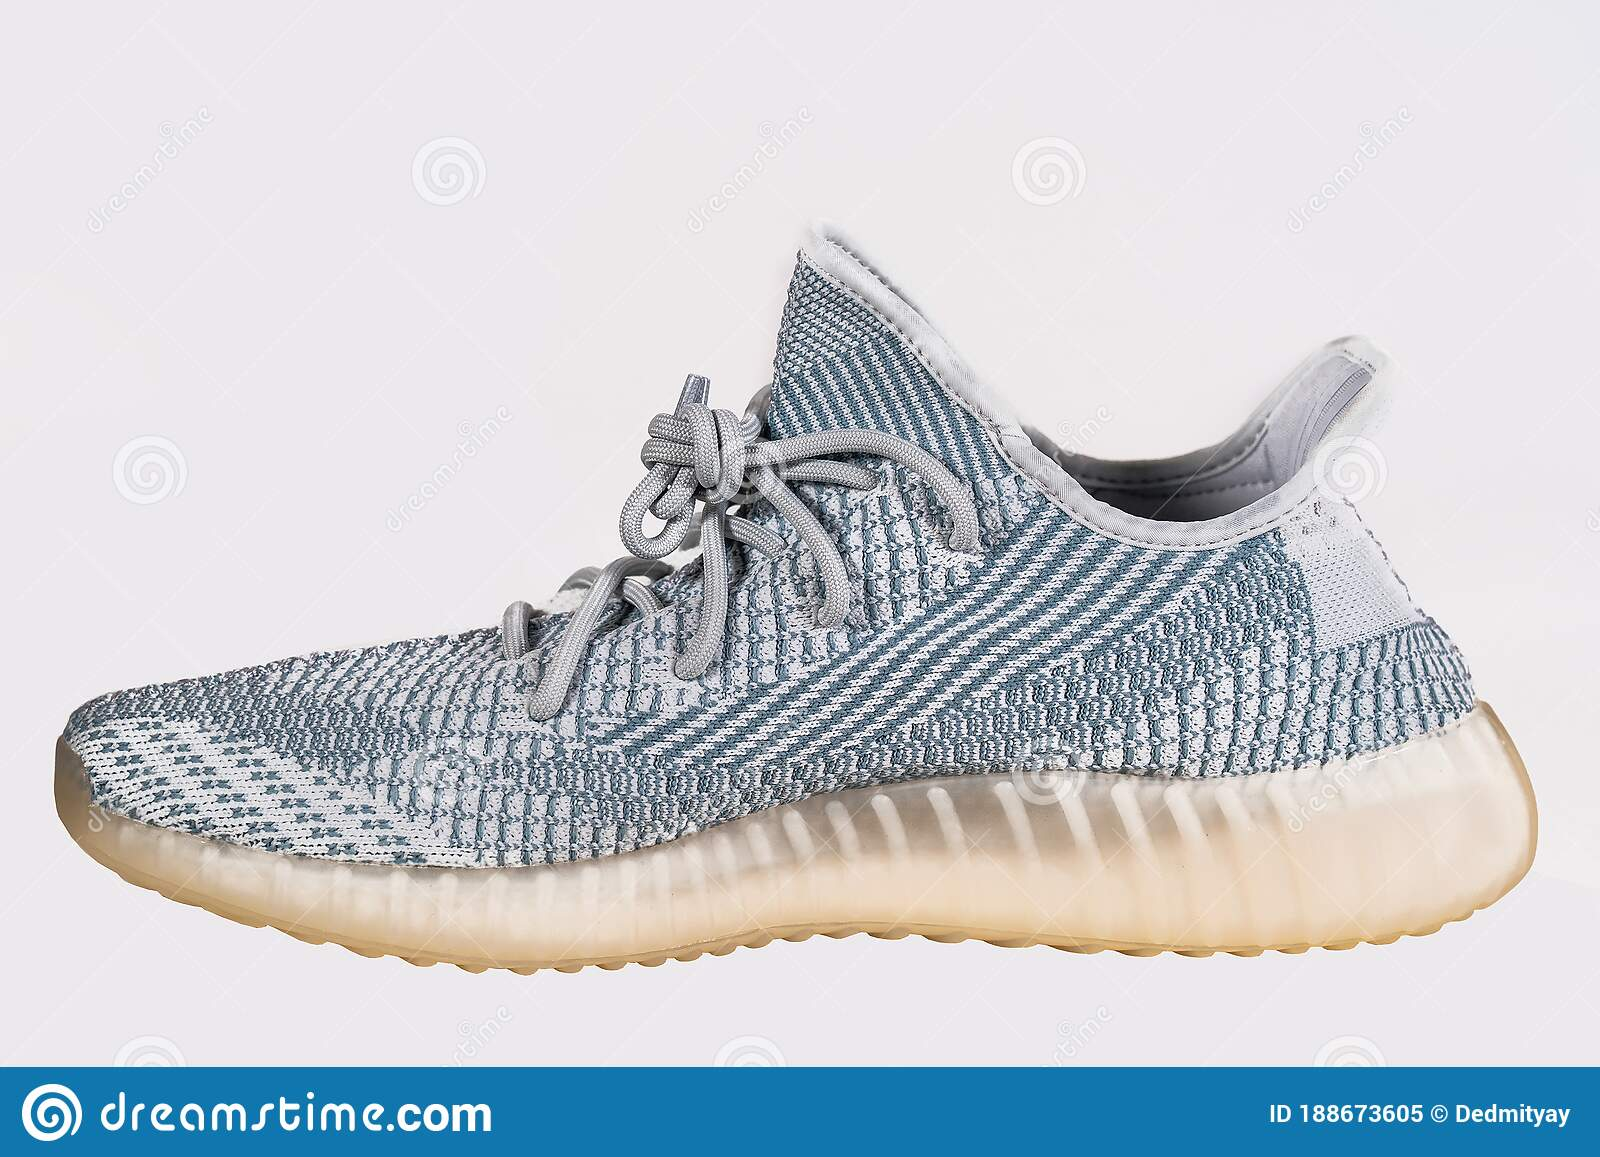 Gobernar Melbourne Grupo  Moscow, Russia - June 2020 : Adidas Yeezy Boost 350 V2 Cloud White - Famous Limited  Collection Fashion Sneakers By Kanye Editorial Image - Image of footwear,  product: 188673605